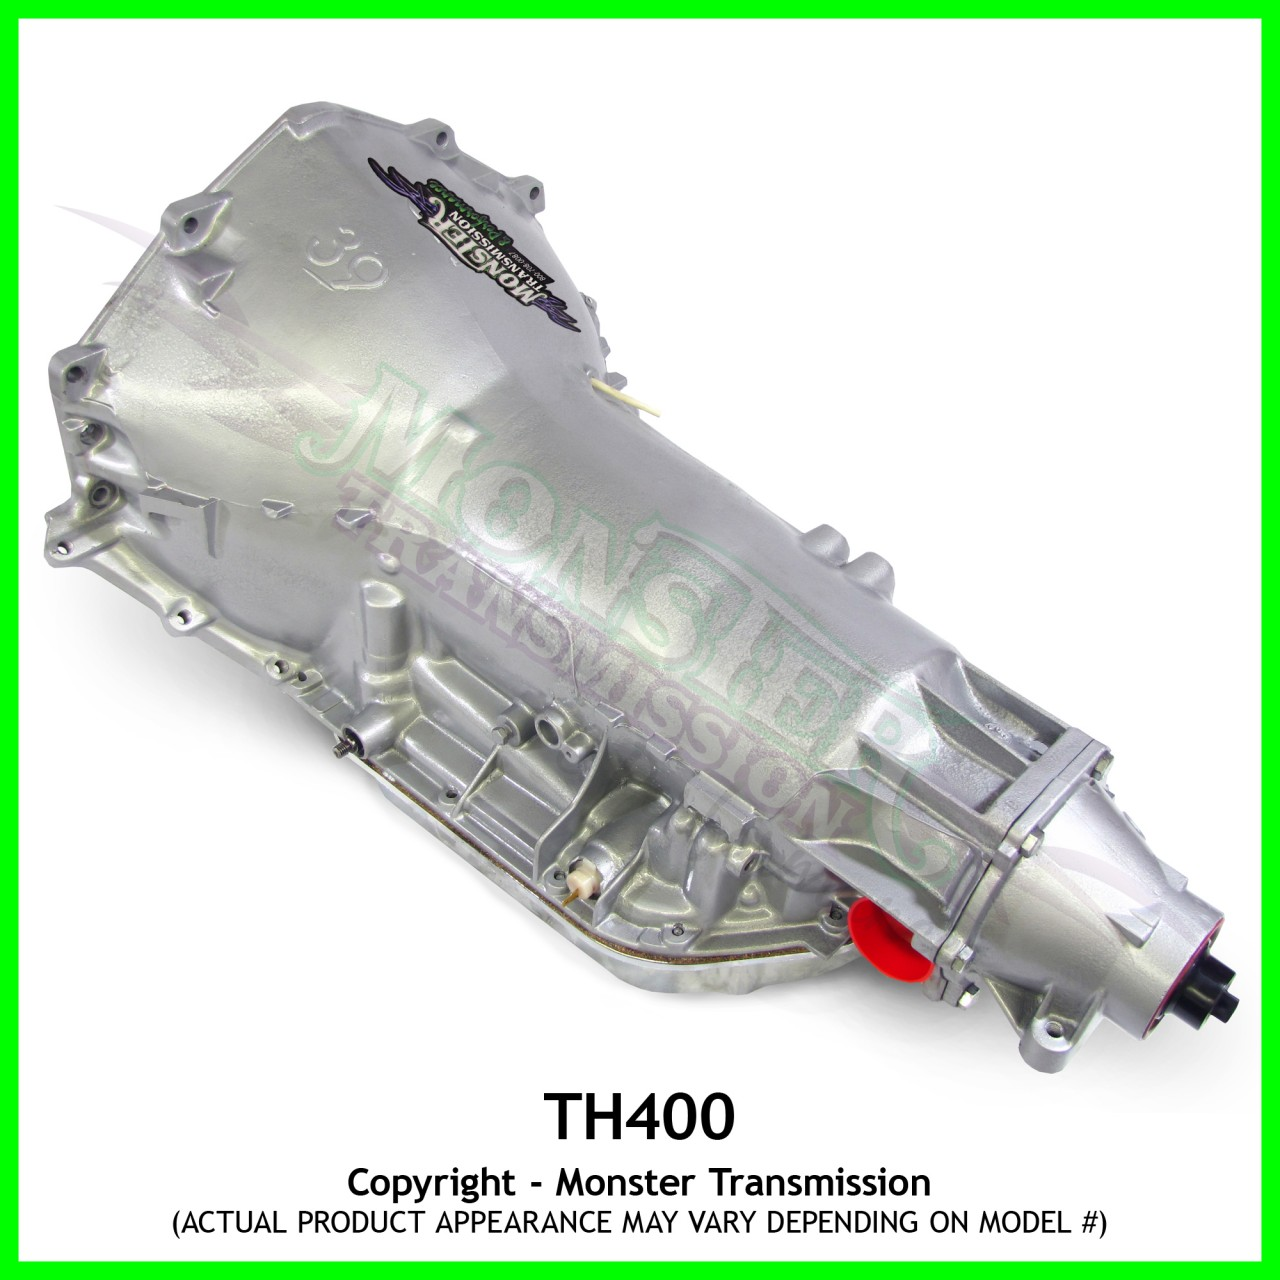 hight resolution of turbo 400 th400 transmission heavy duty performance 4